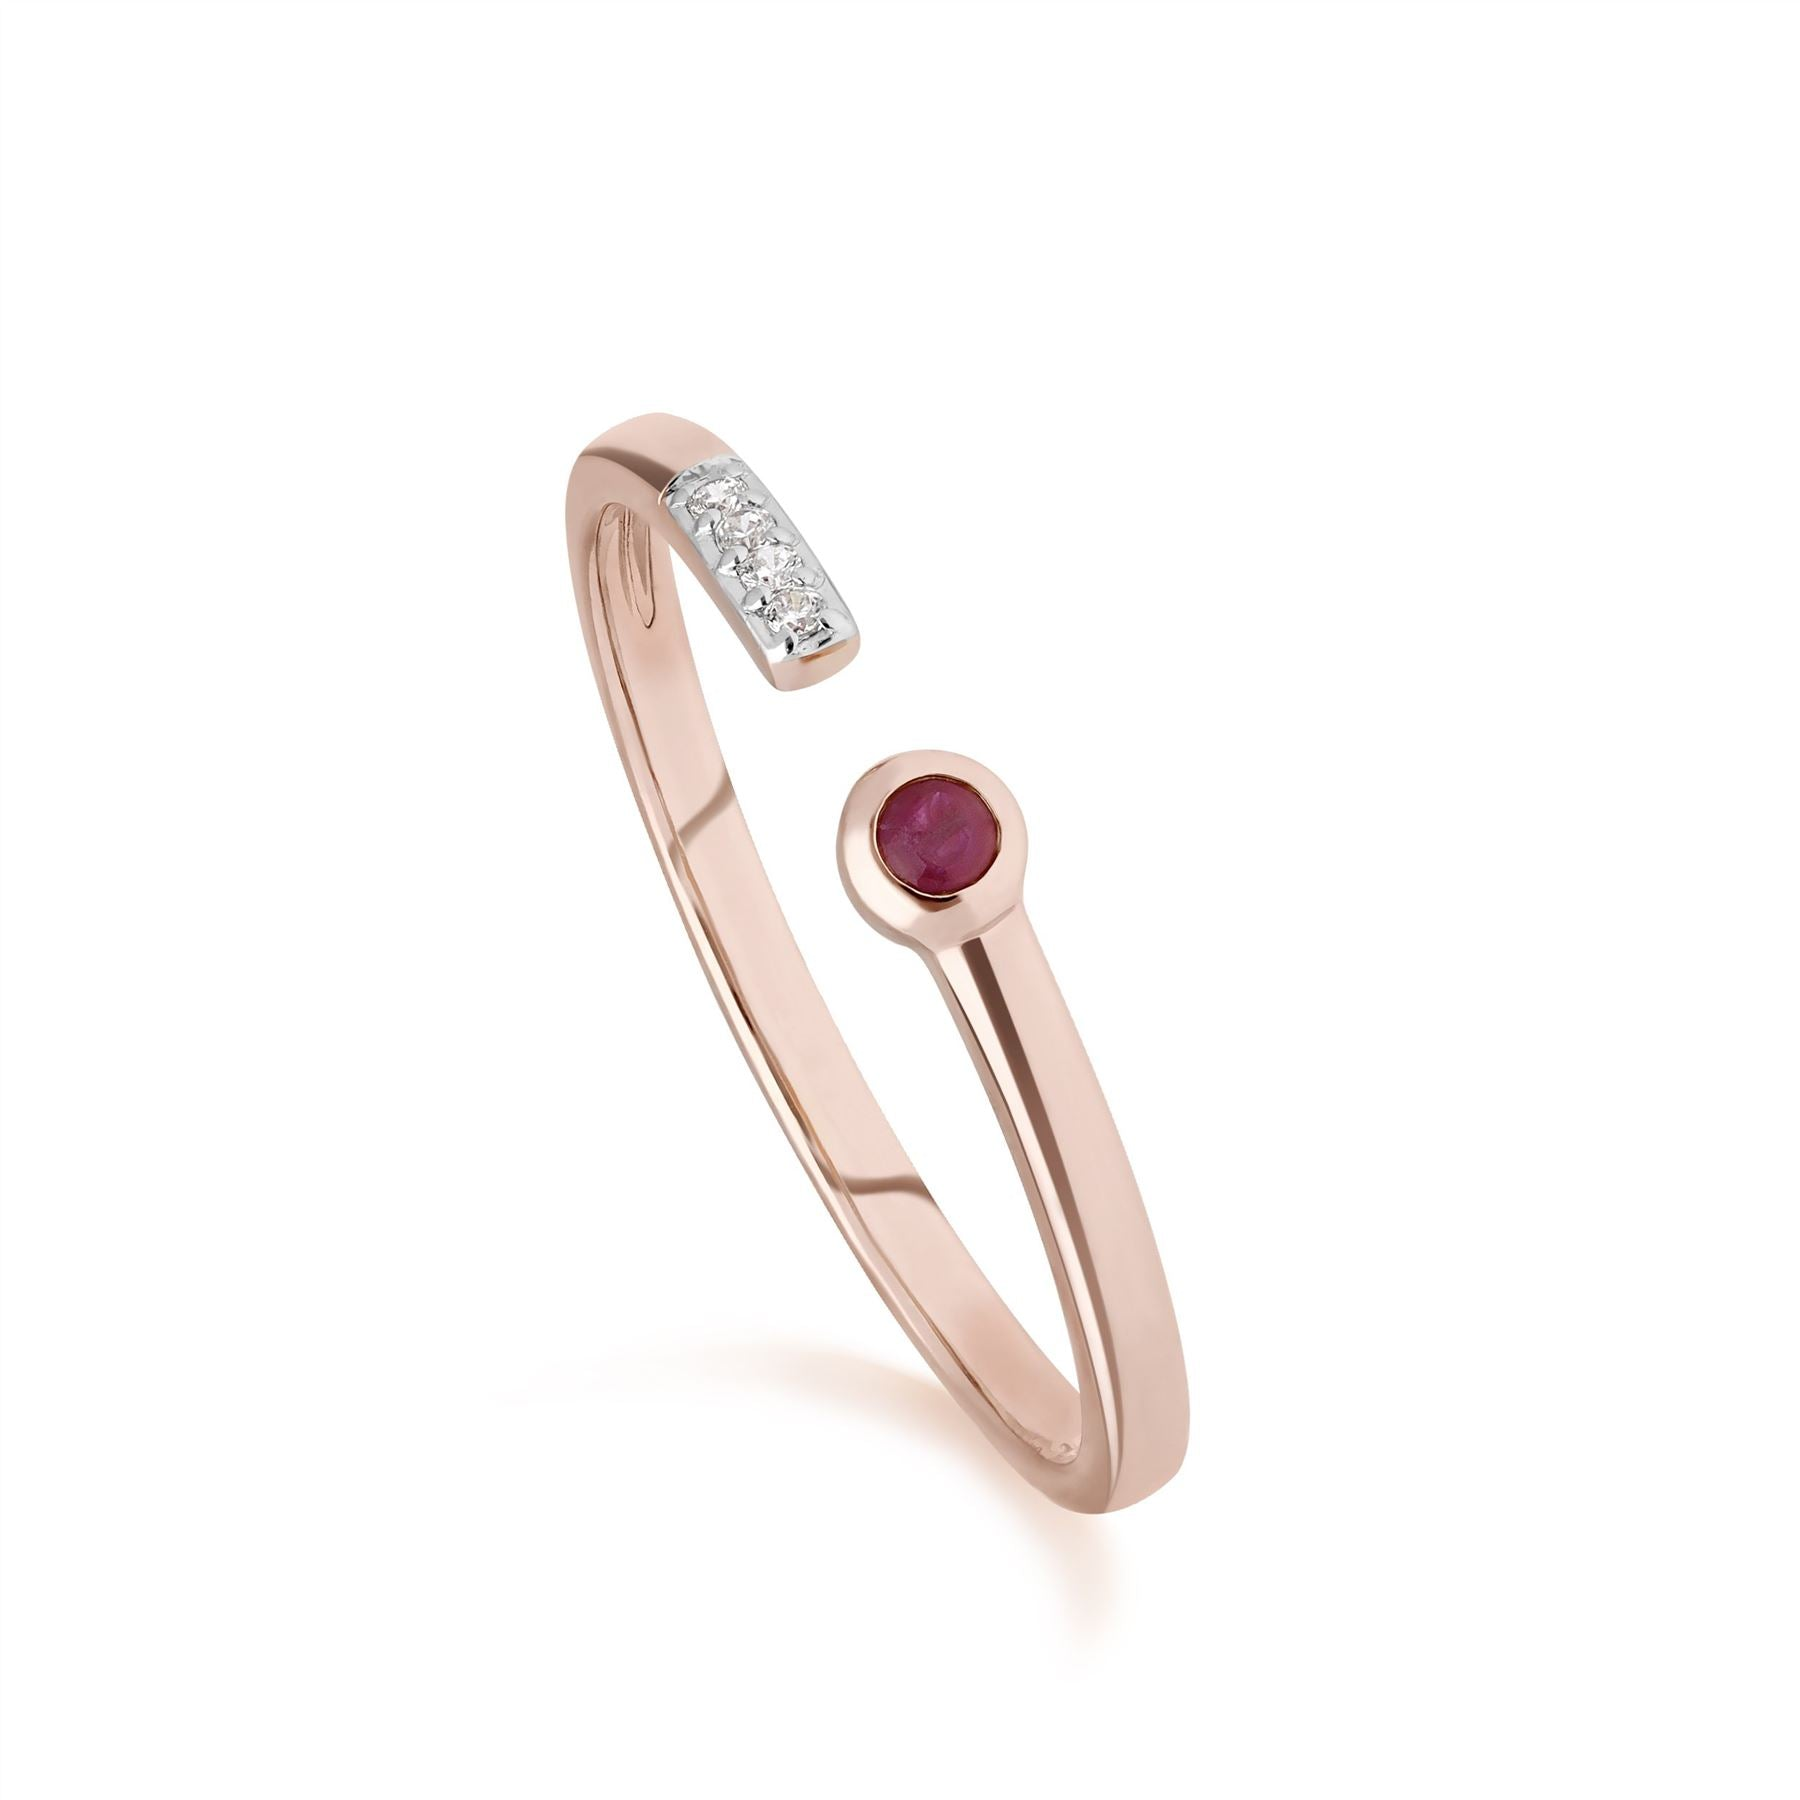 Contemporary Ruby & Diamond Open Ring in 9ct Rose Gold Deal Price £ 150.00